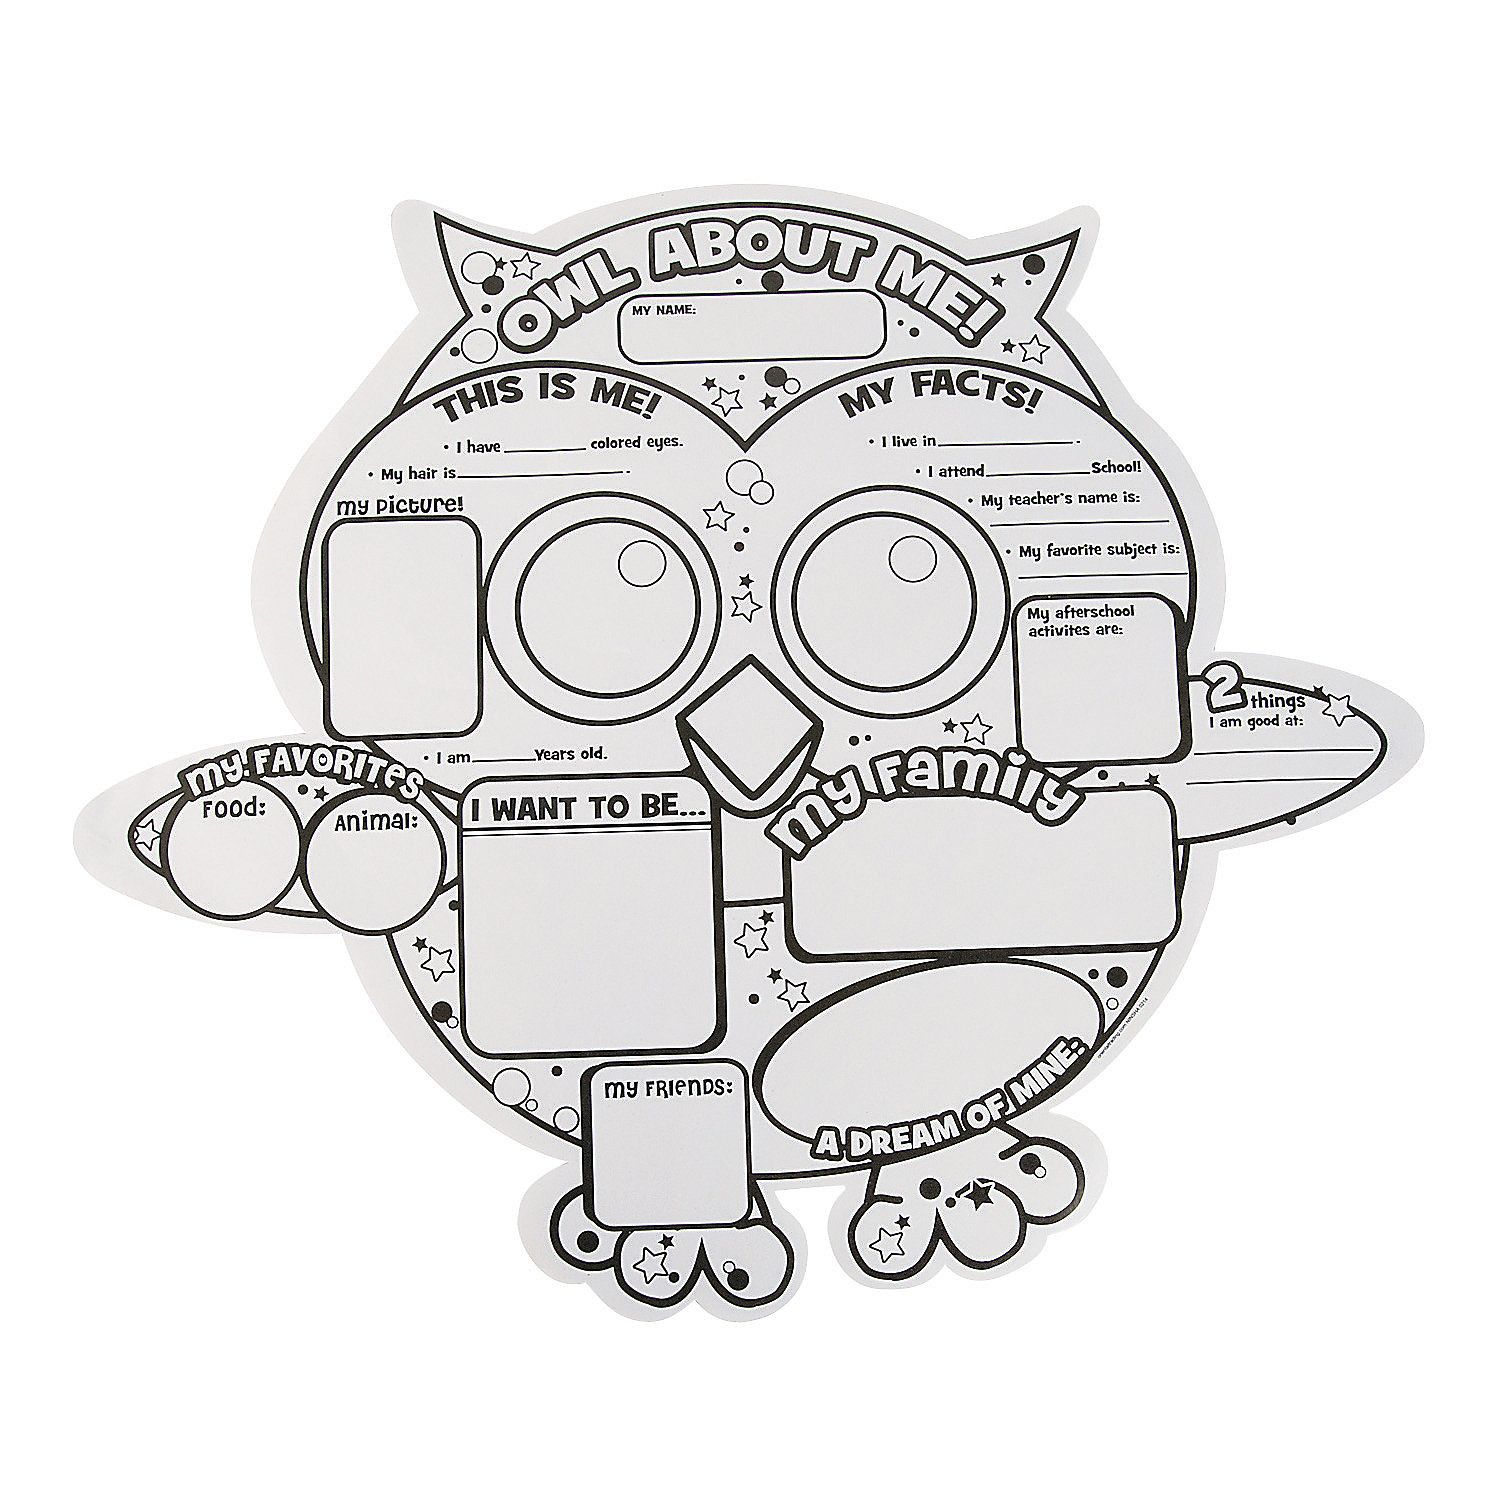 Color Your Own Owl About Me Posters